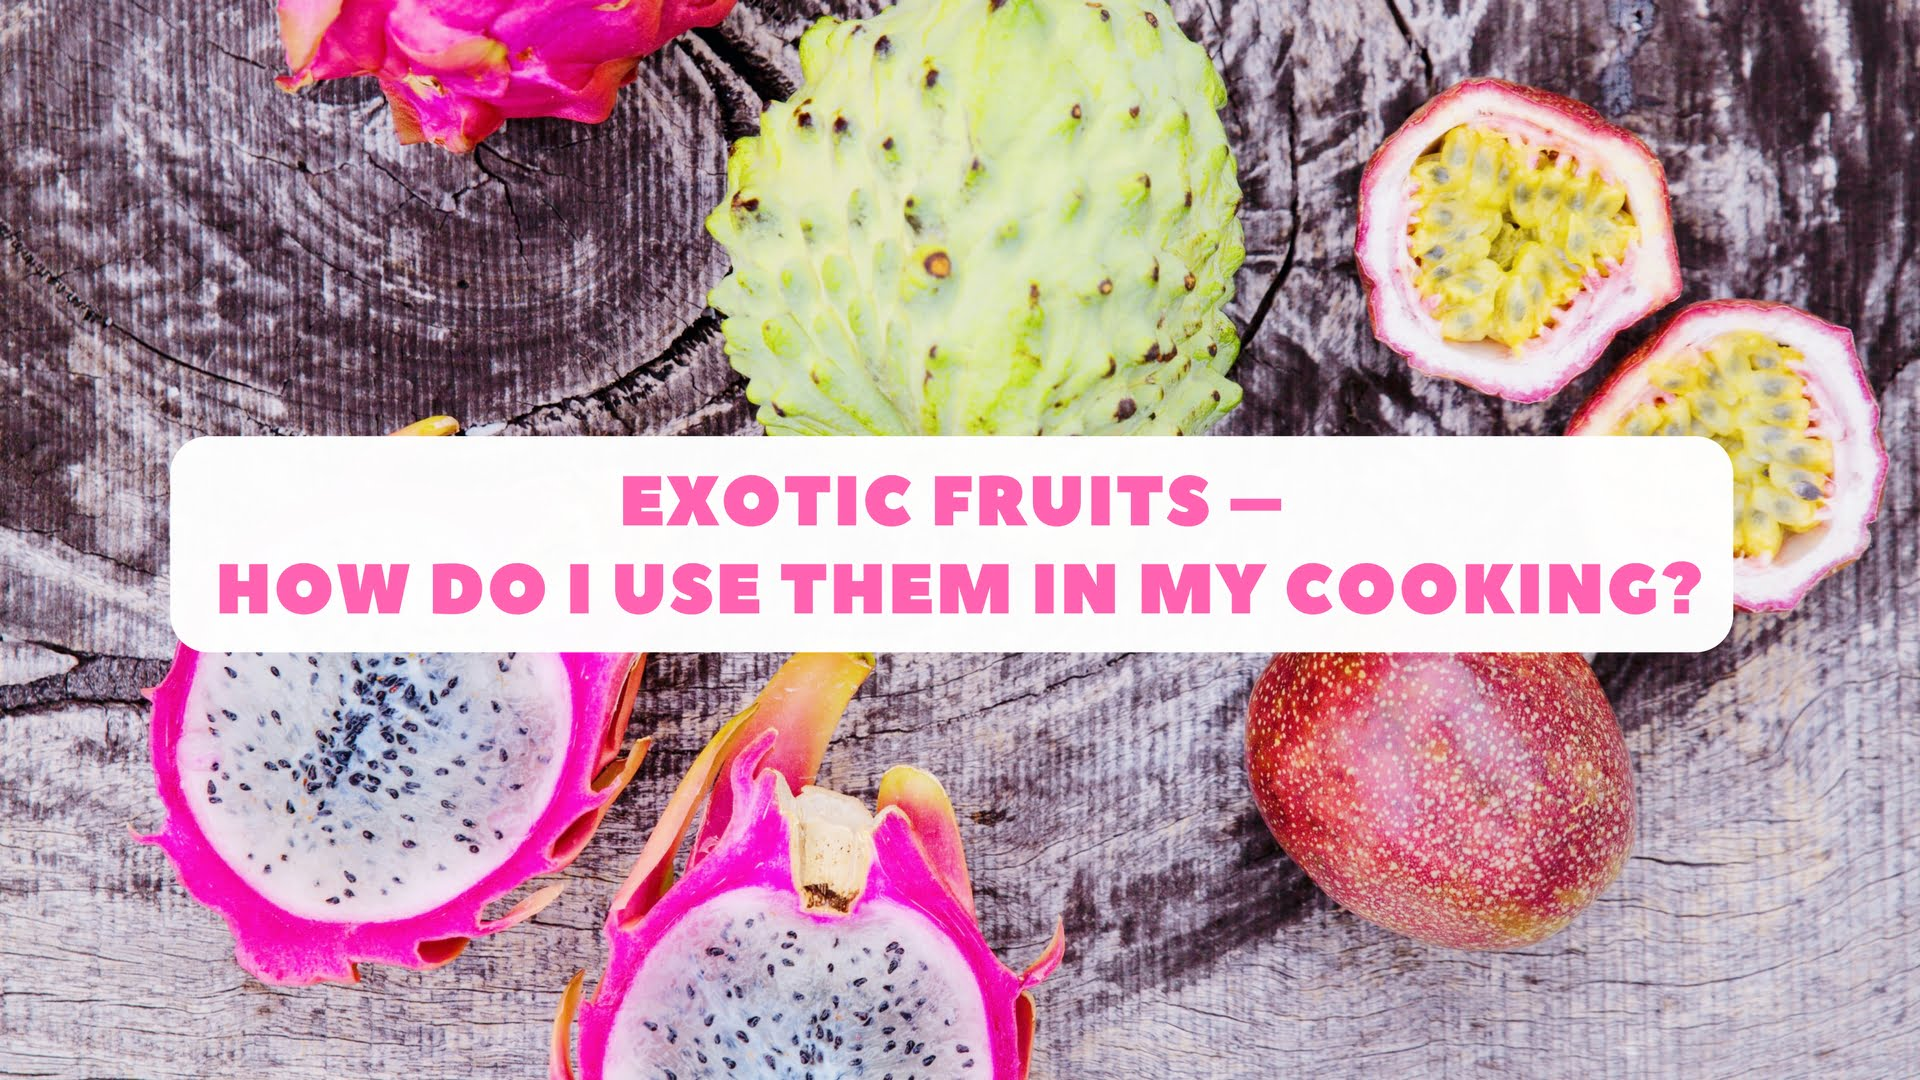 Exotic Fruits – How Do I Use Them In My Cooking?